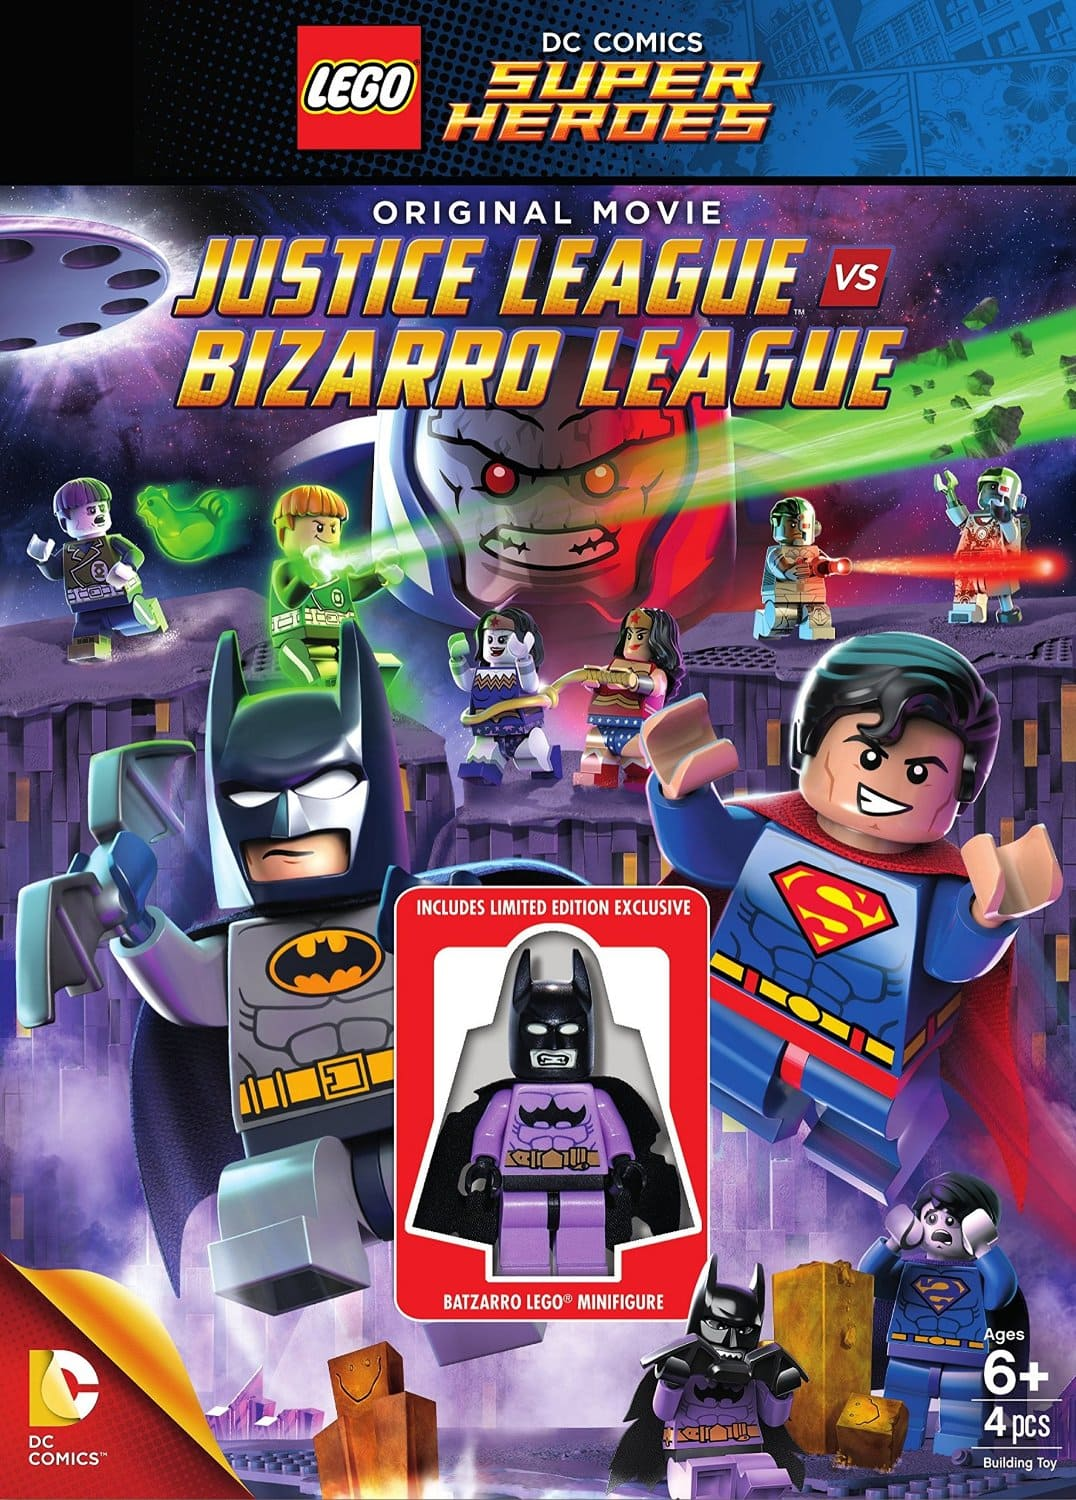 LEGO Super Heroes: Justice League vs. Bizarro w/ Mini Figure (DVD)  $6